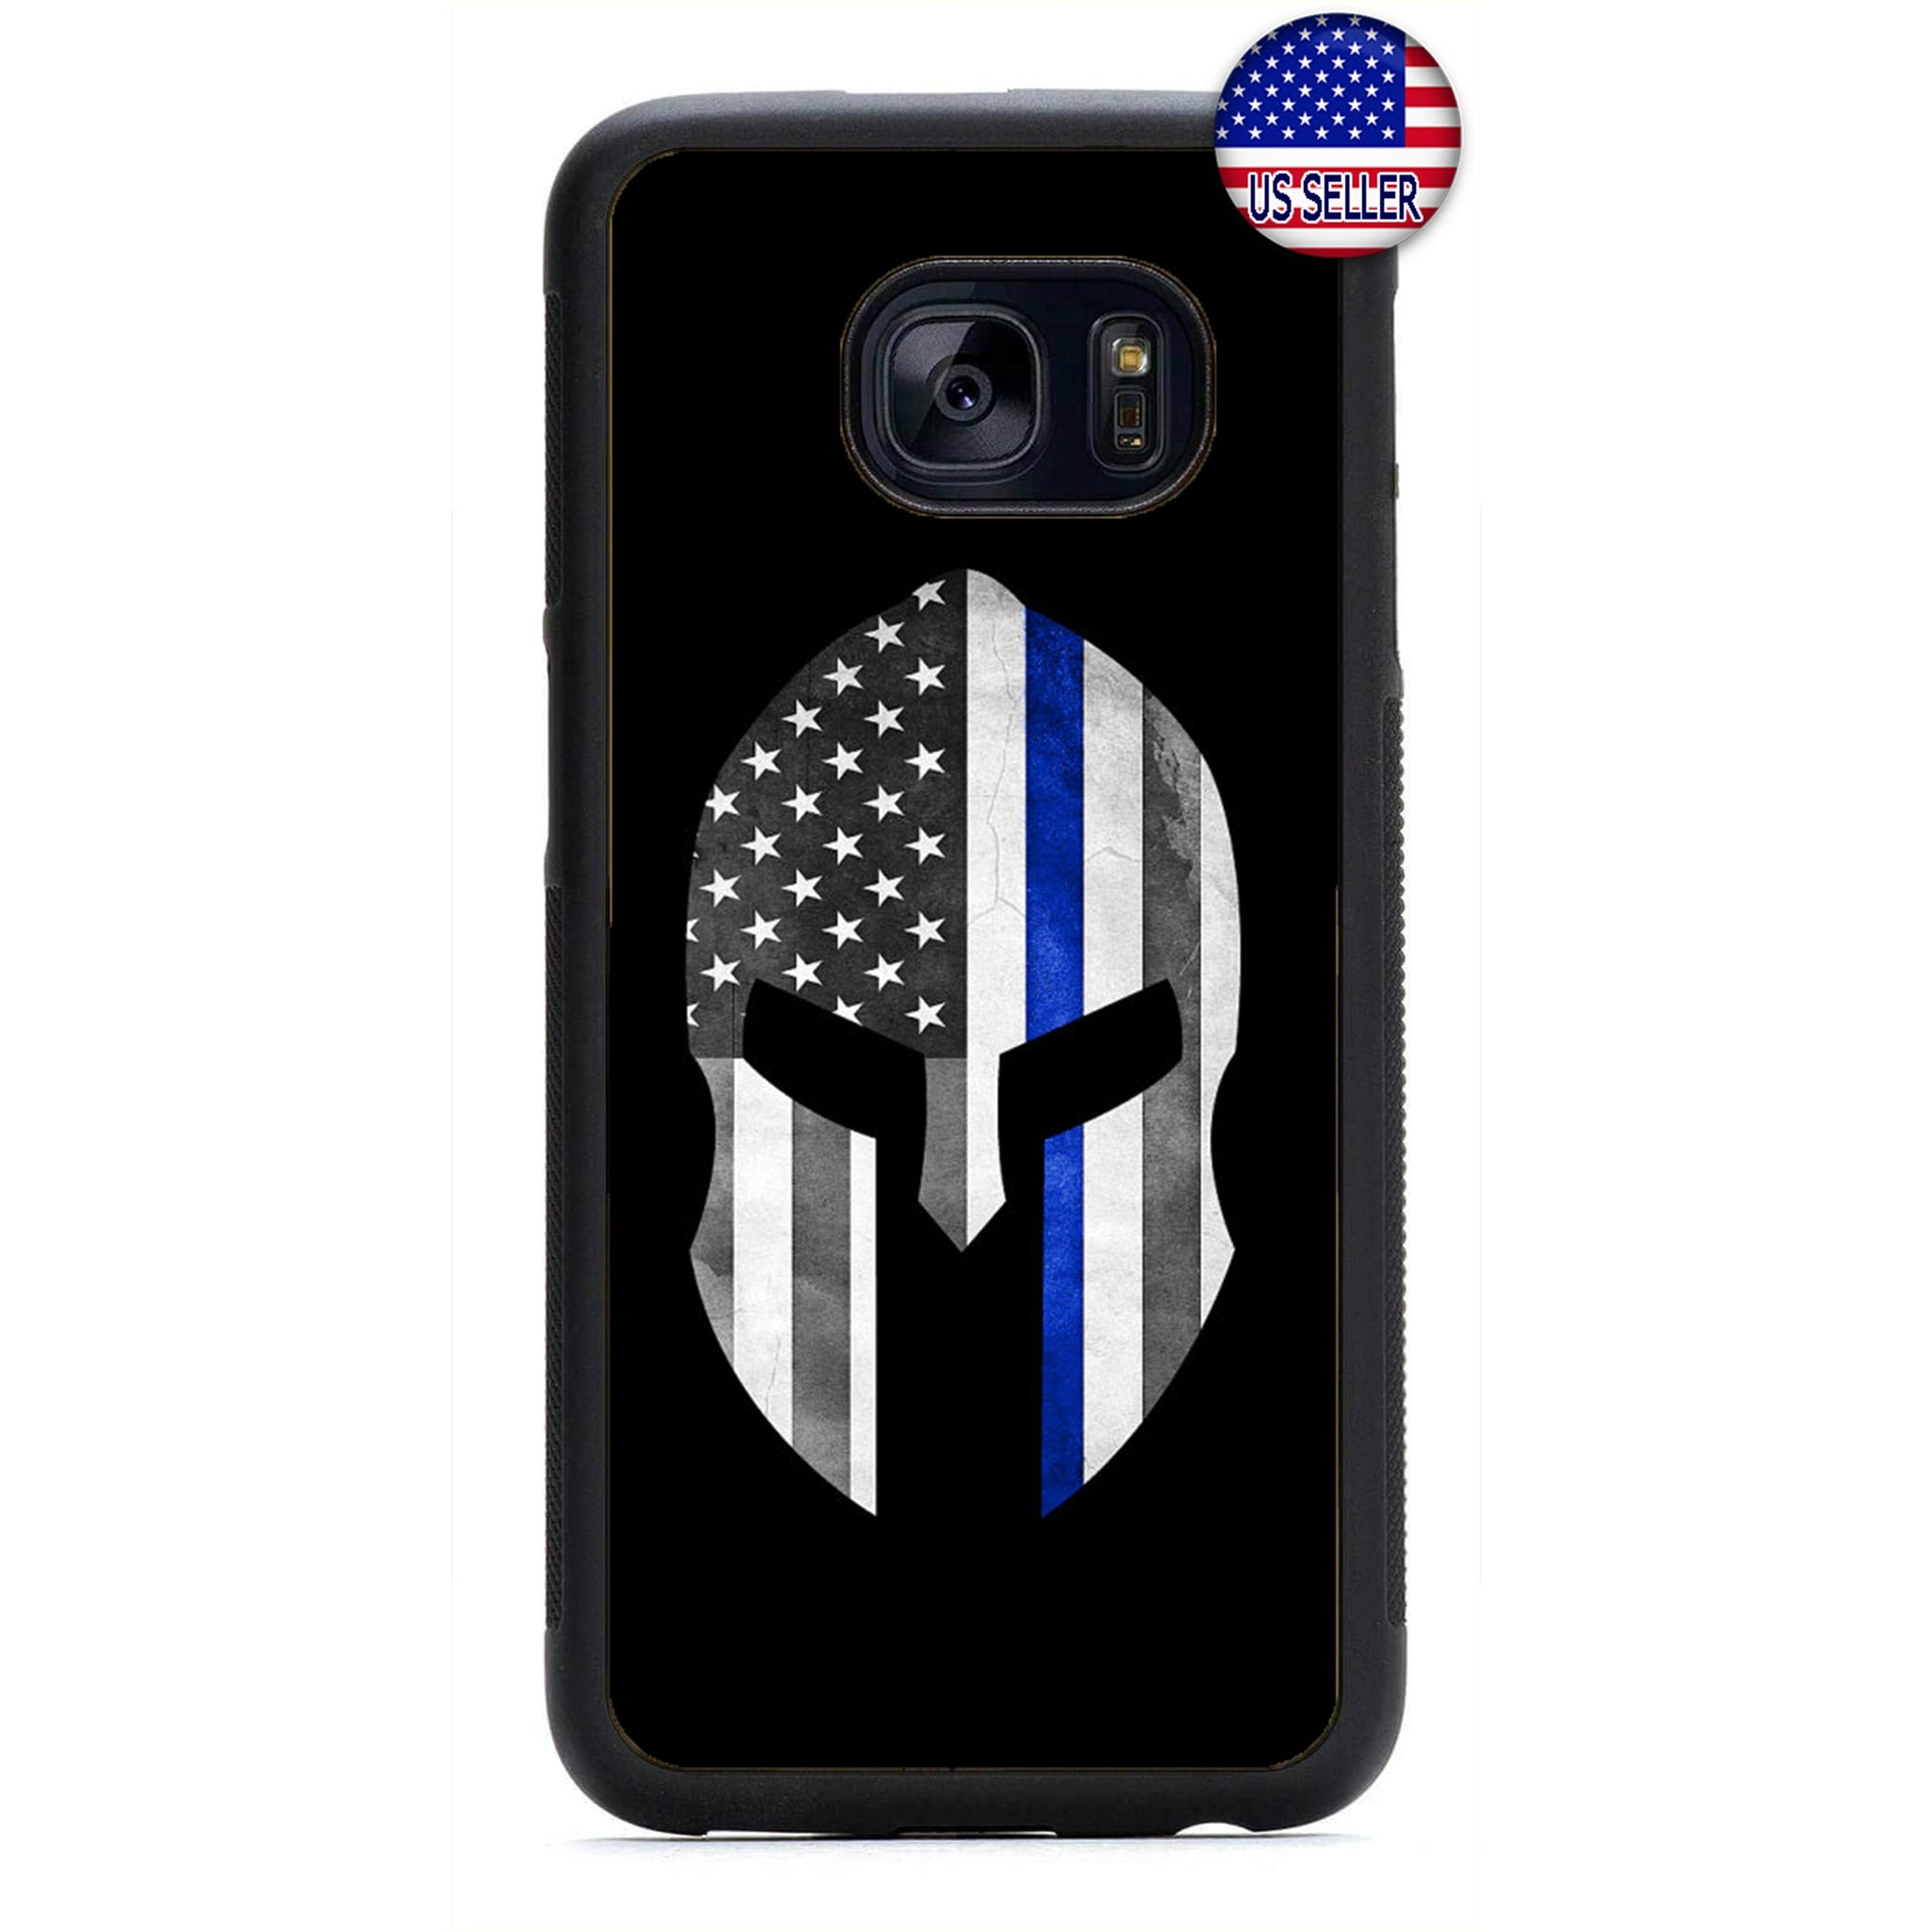 Police Force Warrior USA Flag Rubber Case Cover For Samsung Galaxy